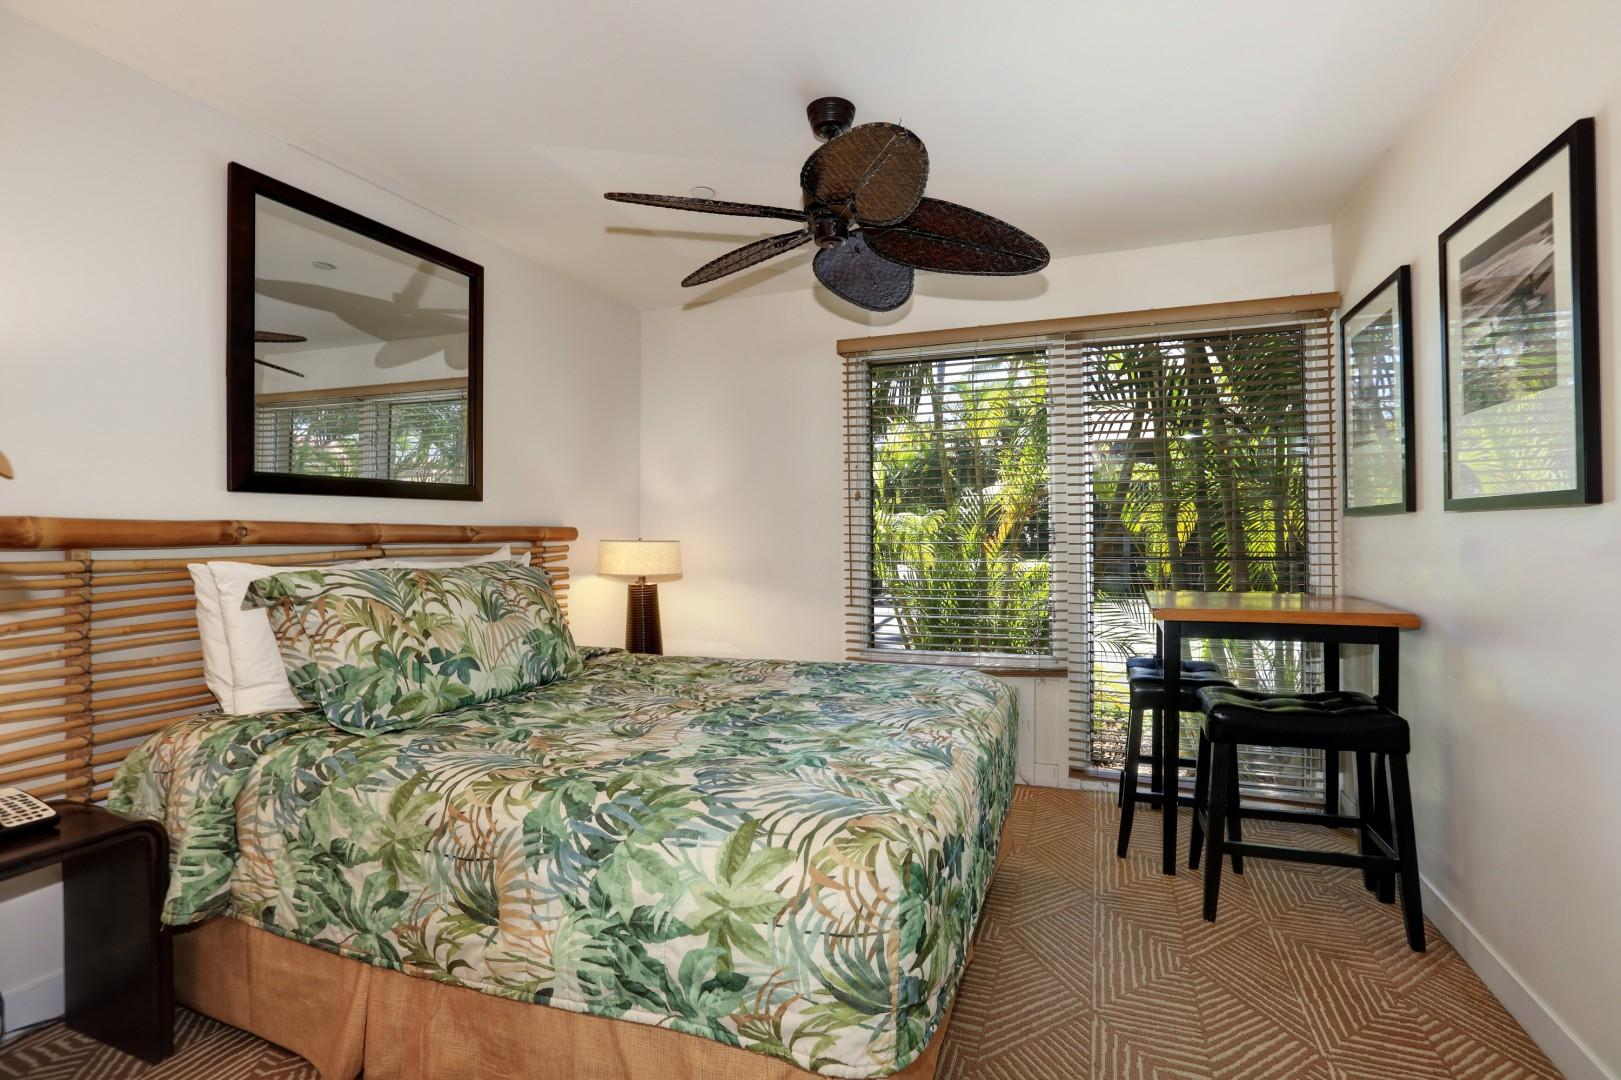 A bright and airy space for your vacation!